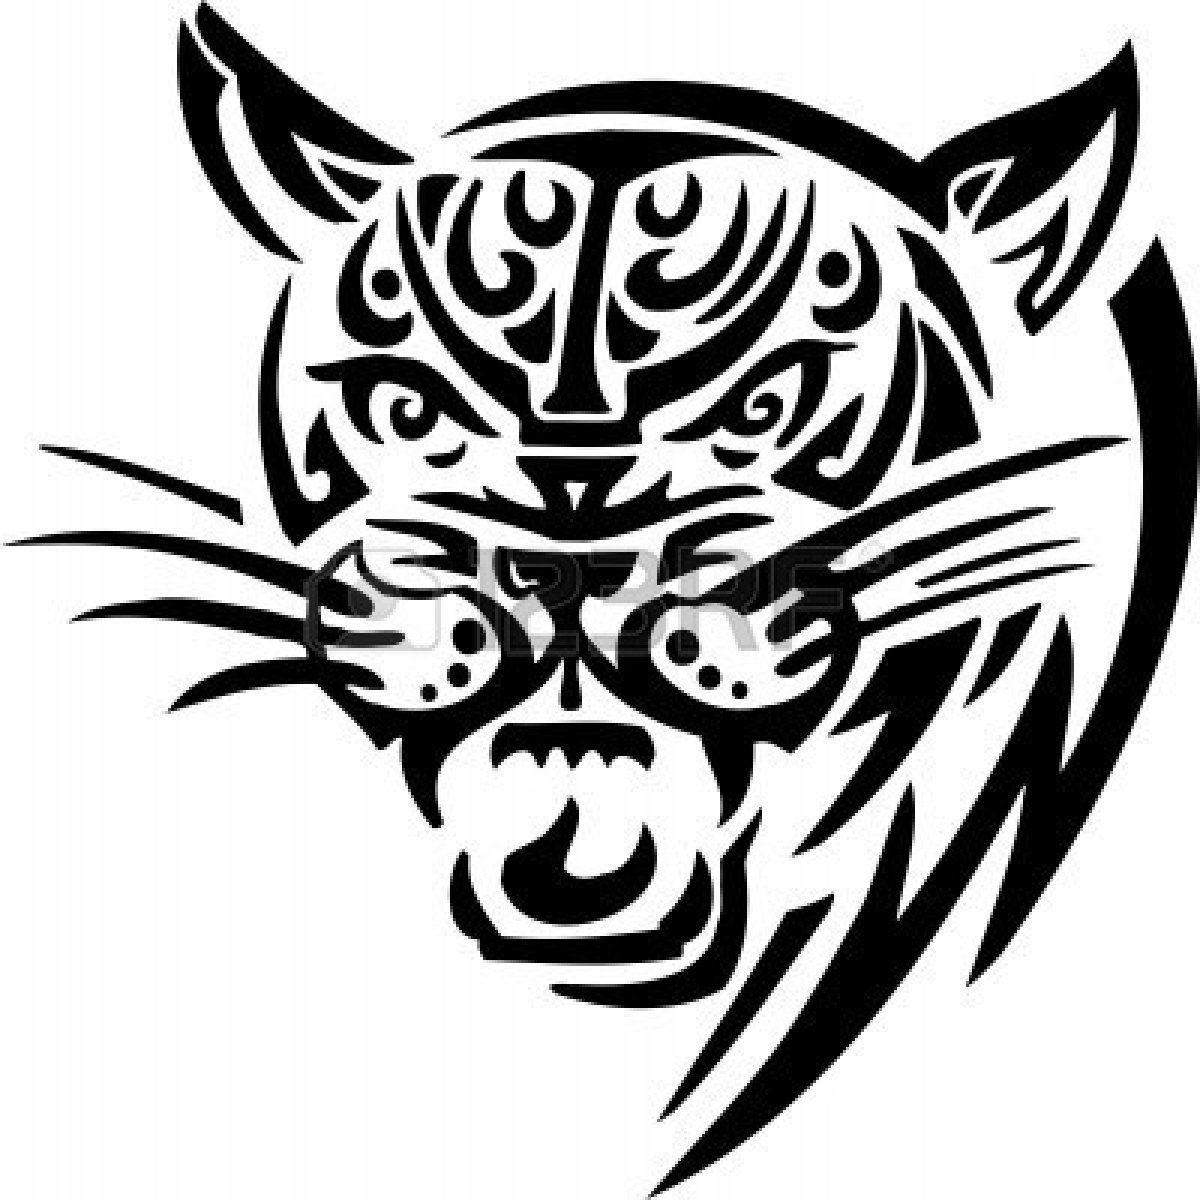 The Best Free Jaguar Drawing Images Download From 552 Free Drawings Of Jaguar At Getdrawings